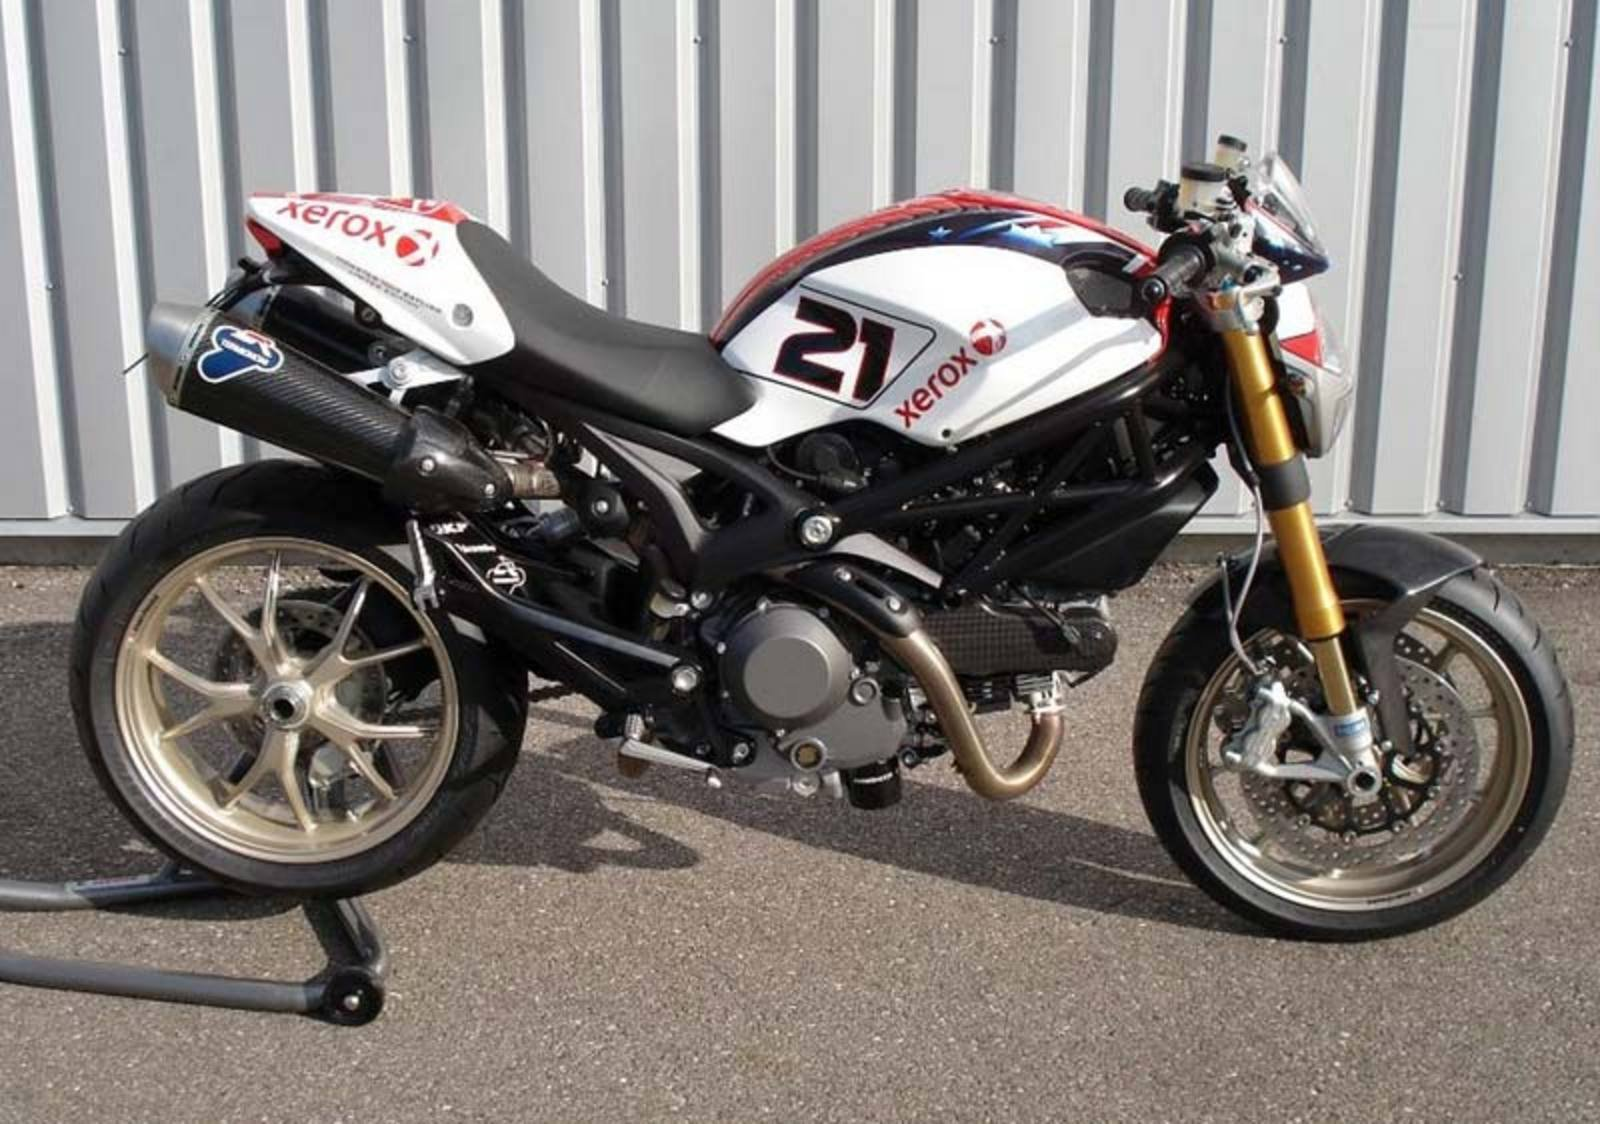 ducati monster 1100 troy bayliss replica news top speed. Black Bedroom Furniture Sets. Home Design Ideas